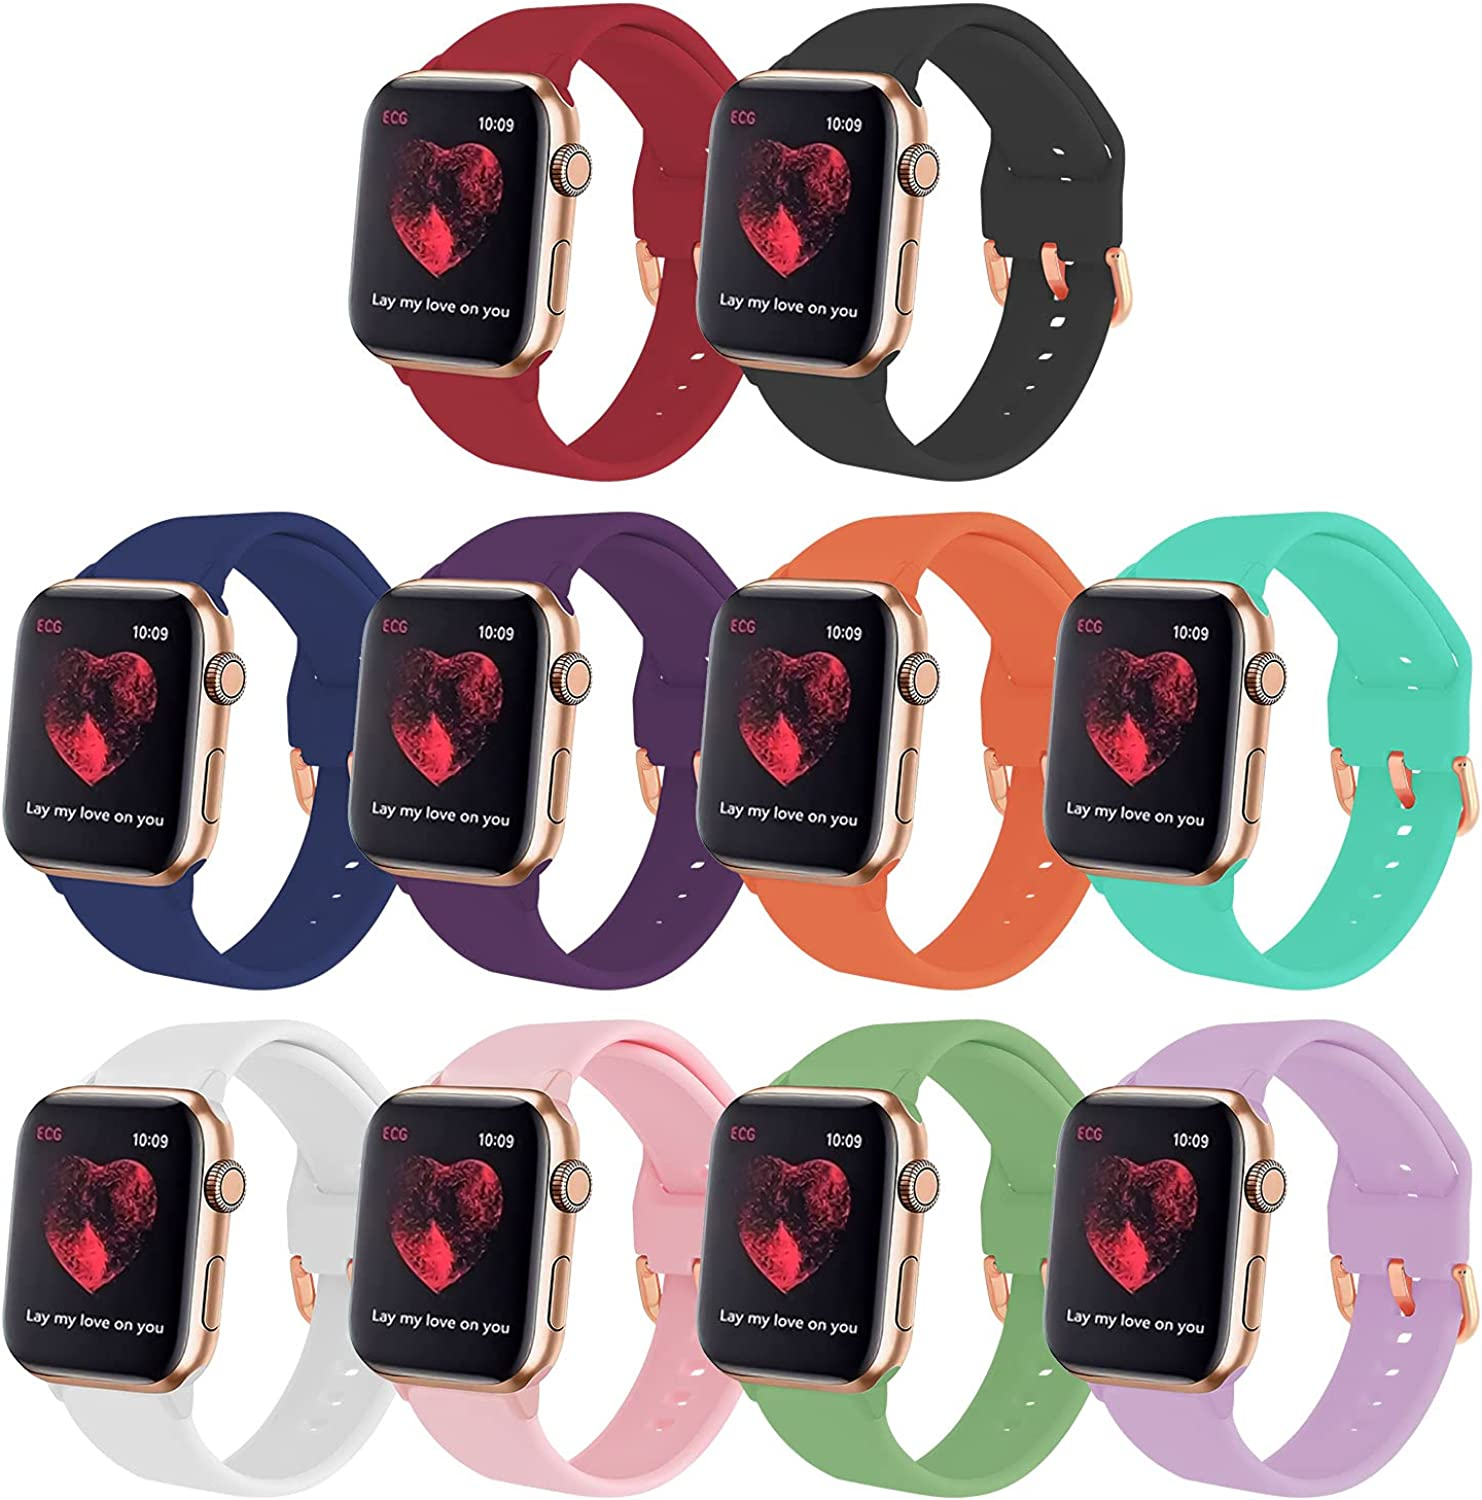 GinCoband 10PCS Sport Bands Compatible with Apple Watch Bands 40mm 44mm 38mm 42mm Watch,Soft Silicone Replacement Wristband for iWatch Series 6/5/4/3/2/1/Series SE